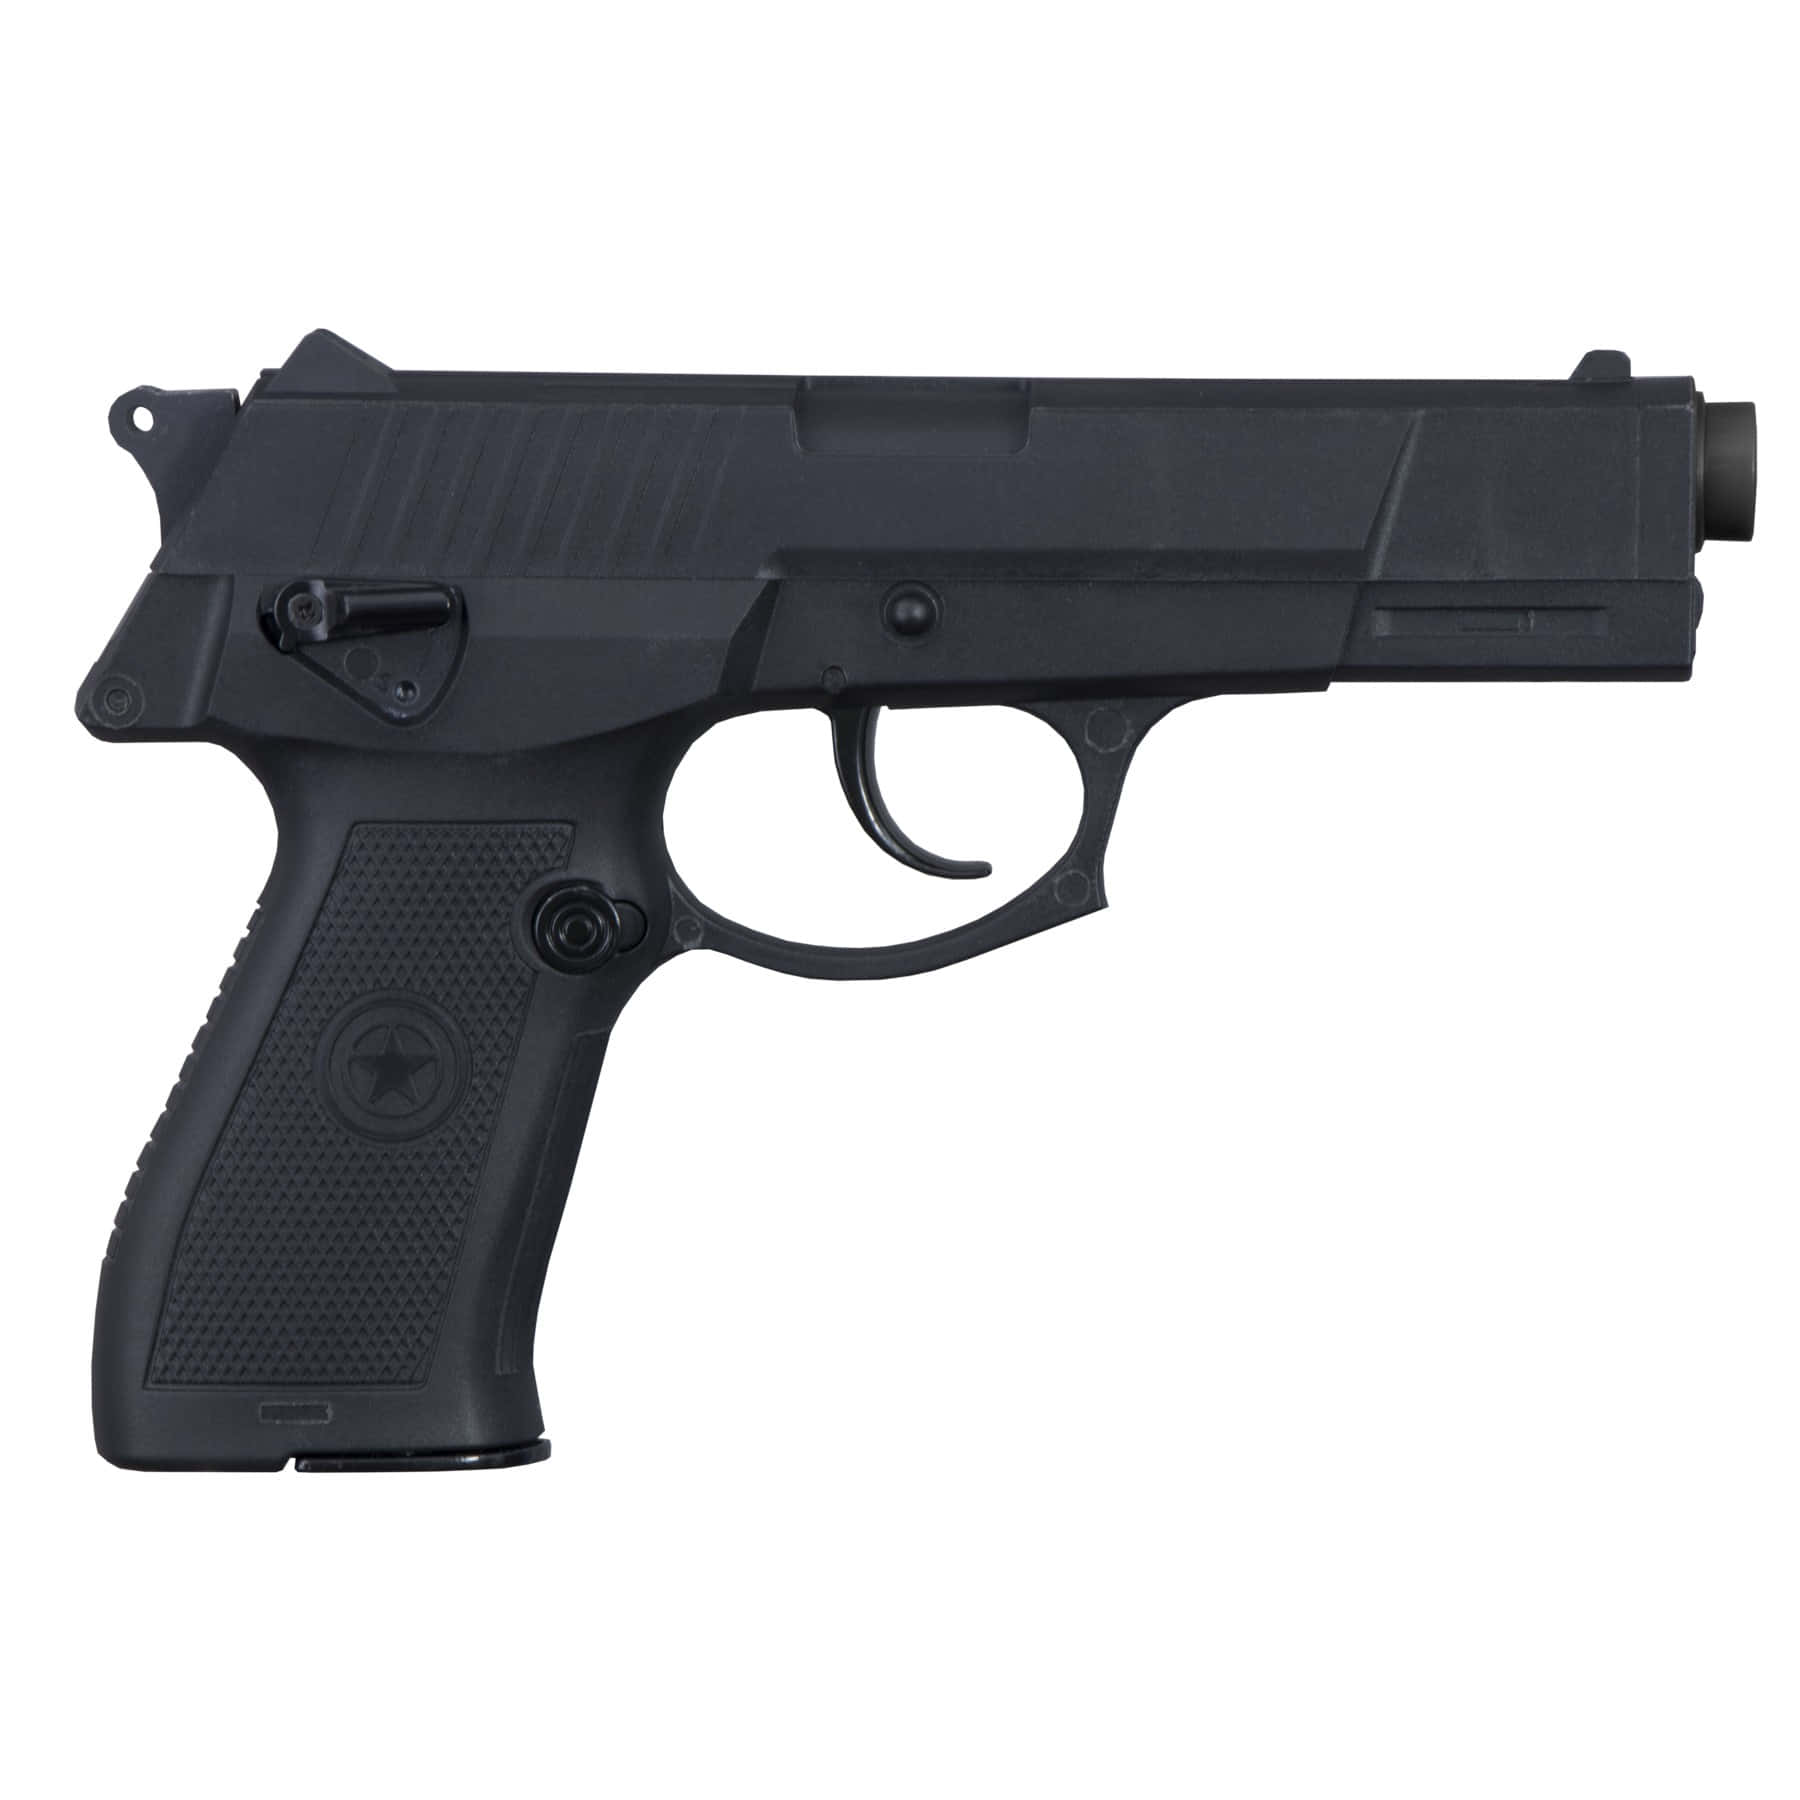 MA735-4 Pistolet Co2 G.I. Menace Cal. 50 - MA735